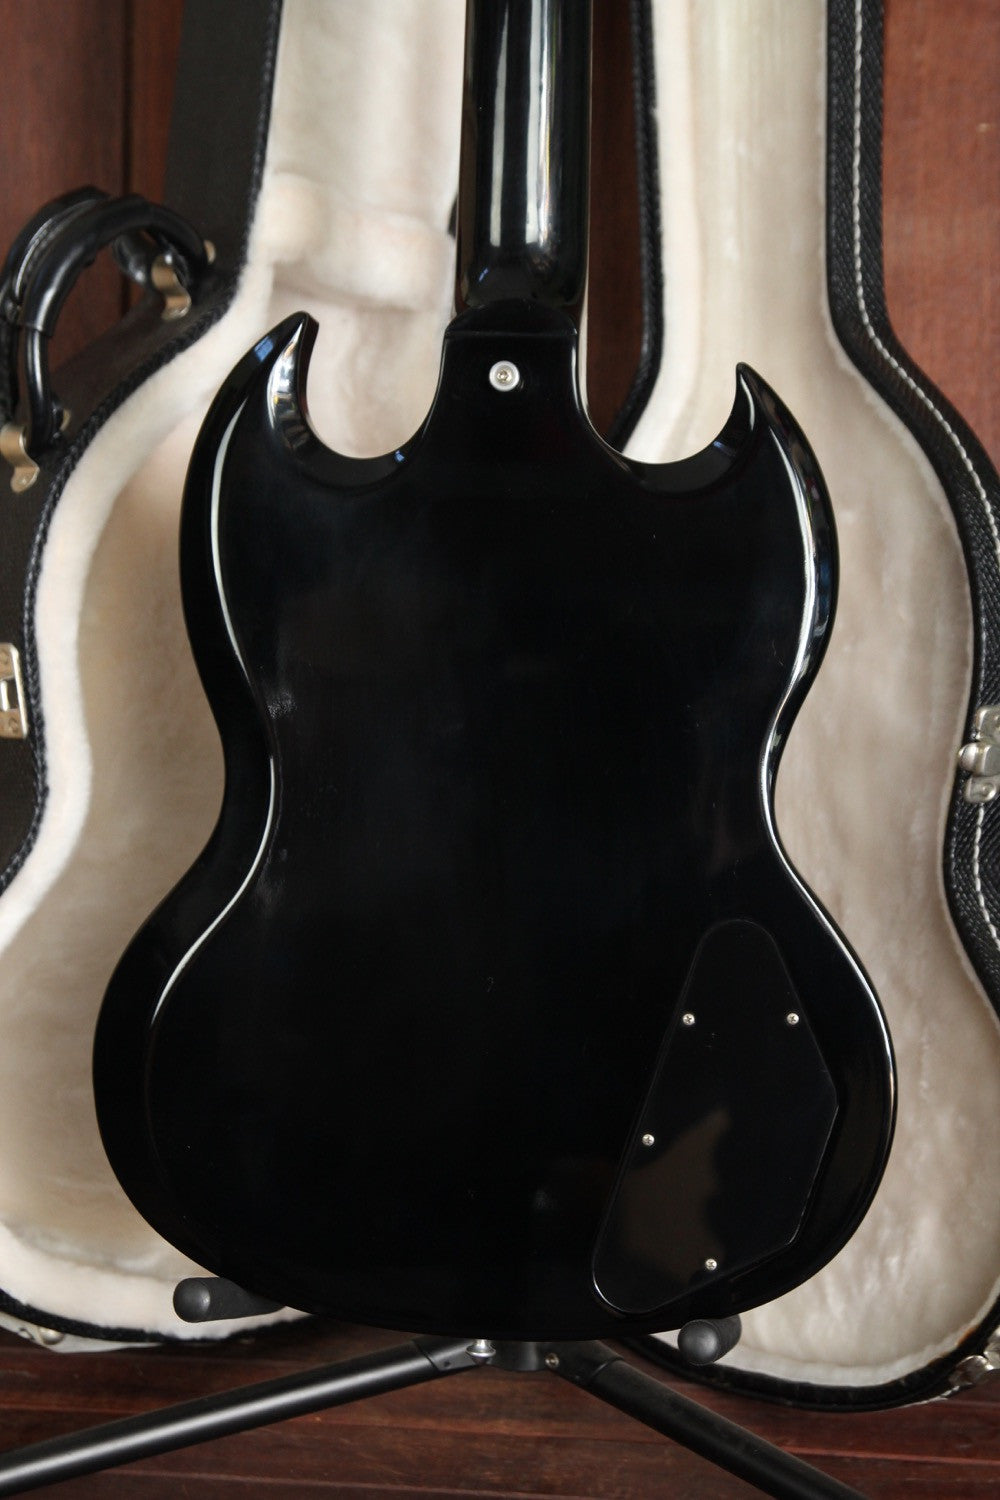 *NEW ARRIVAL* Gibson SG Standard Left-Handed Black Pre-Owned